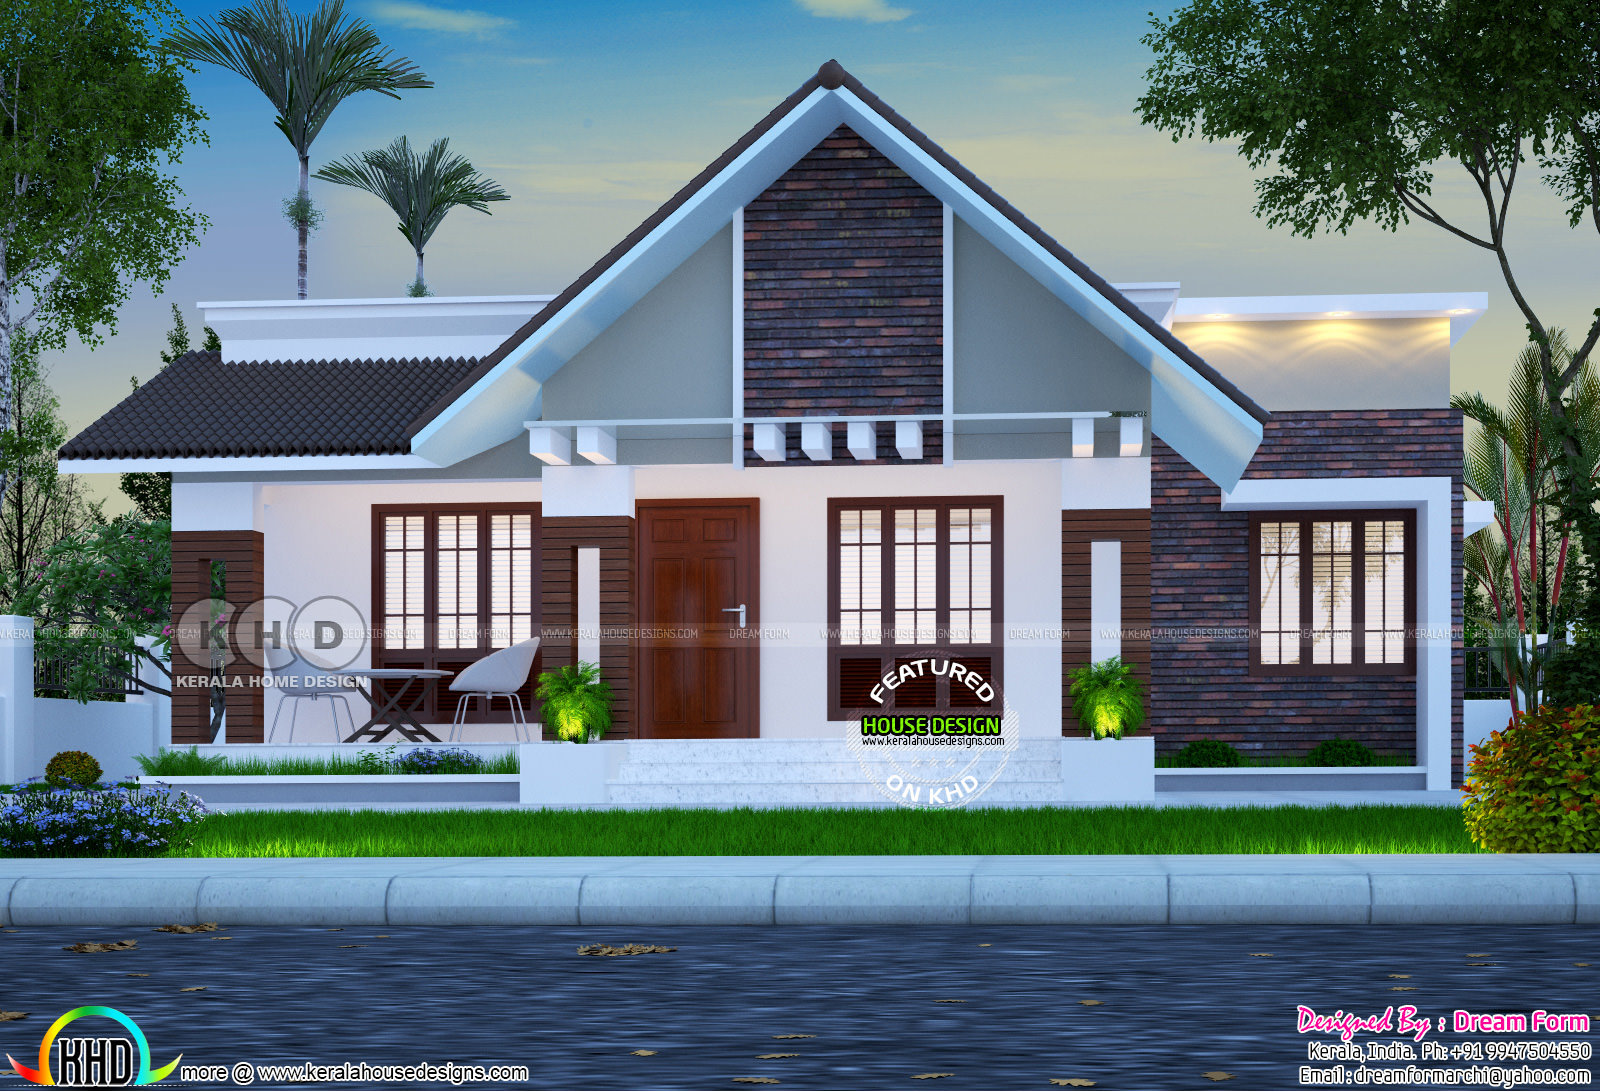 Low Cost Modern Kerala Home Plan 8547872392: Kerala Home Design And Floor